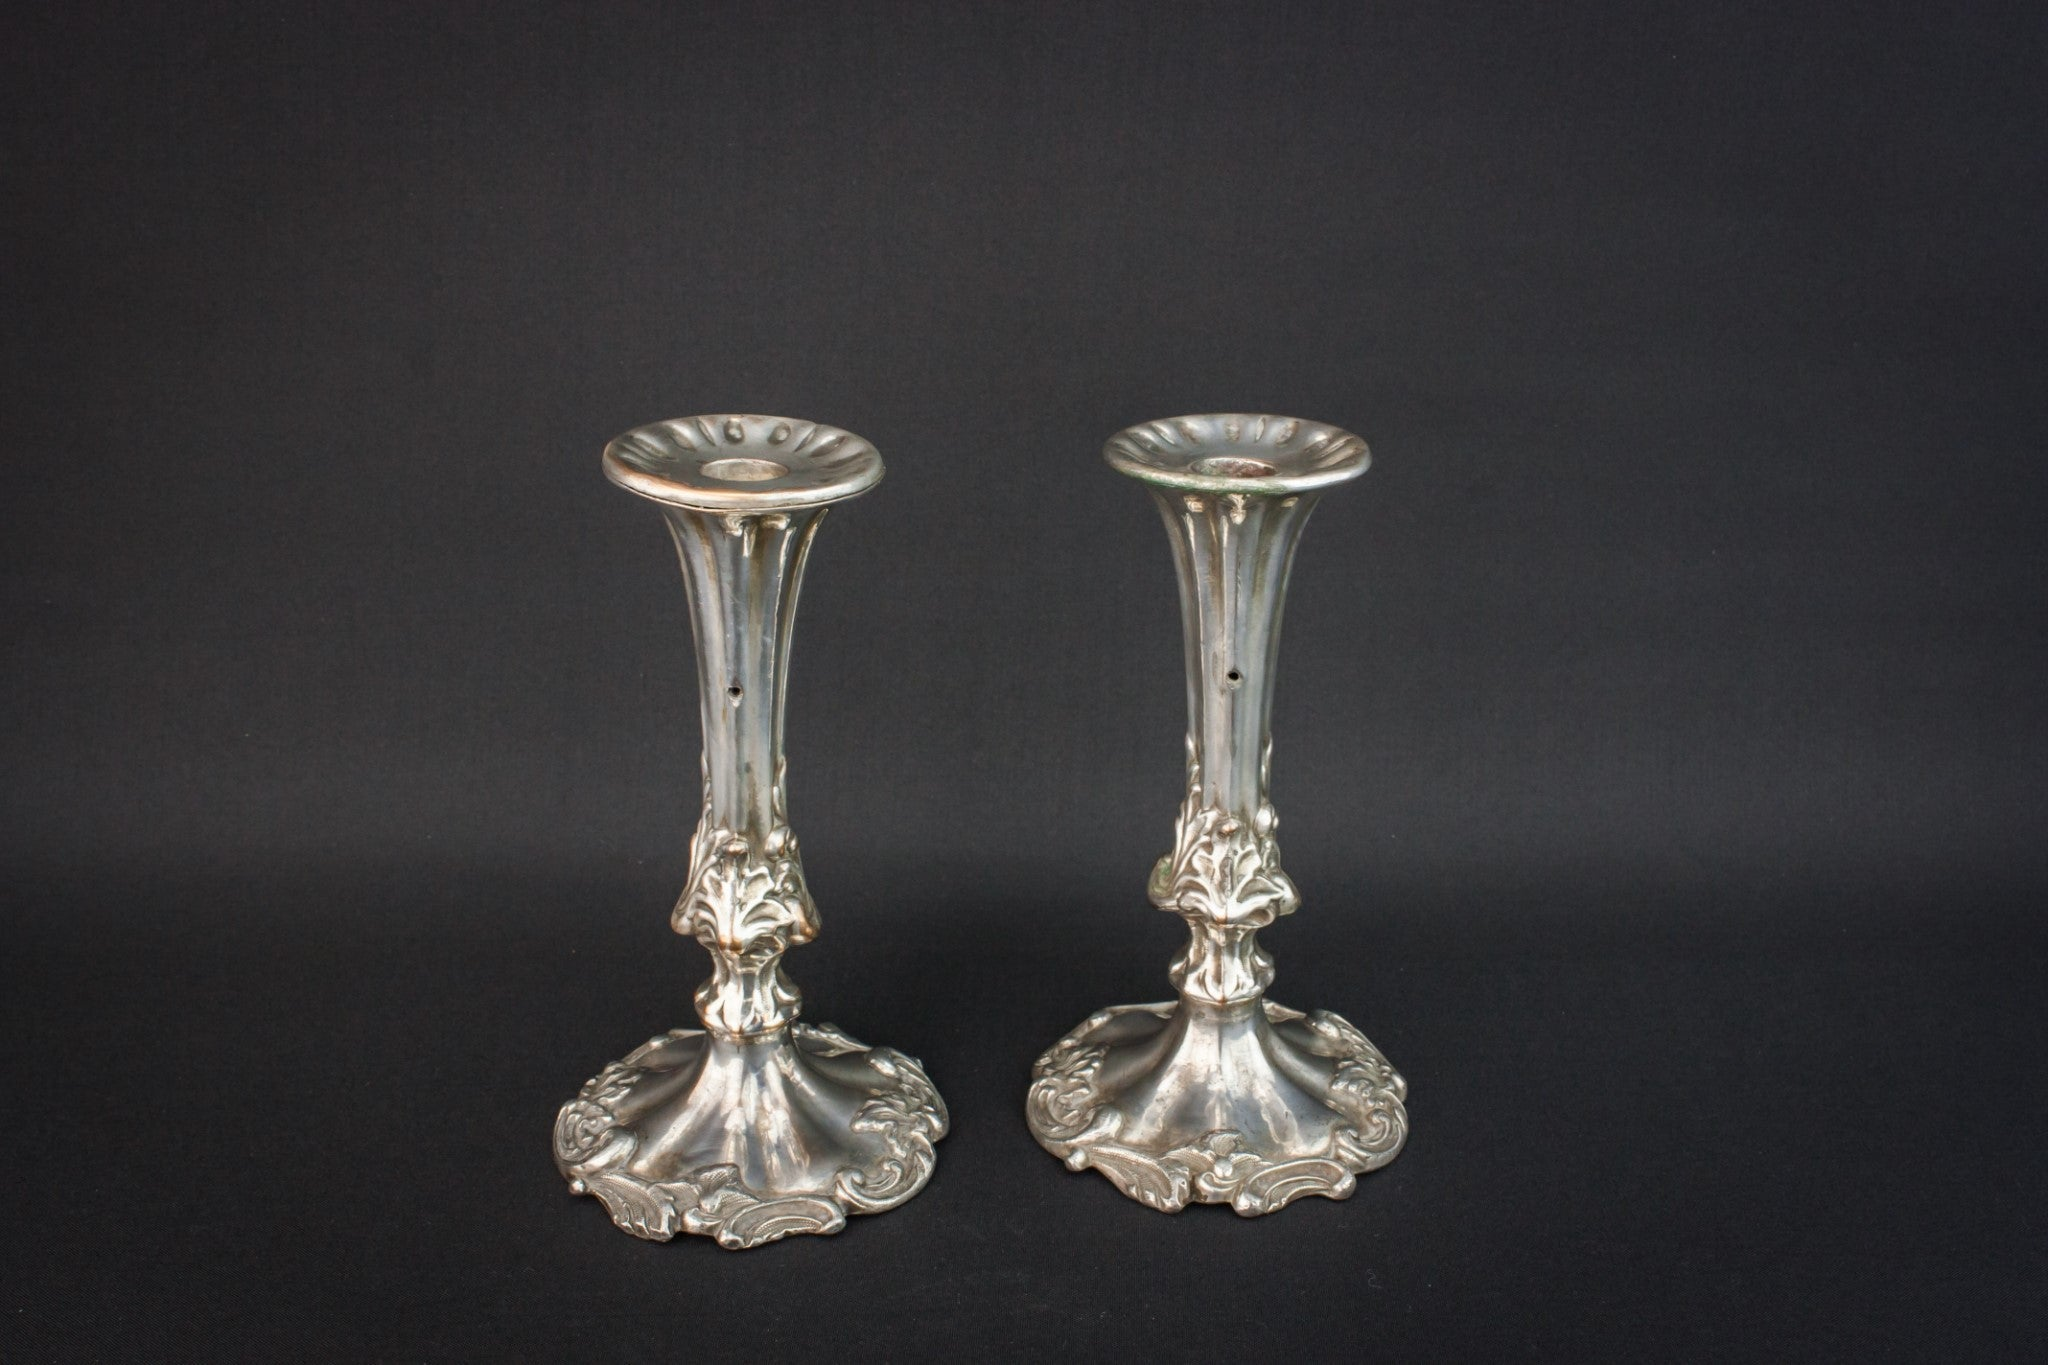 2 small candlesticks